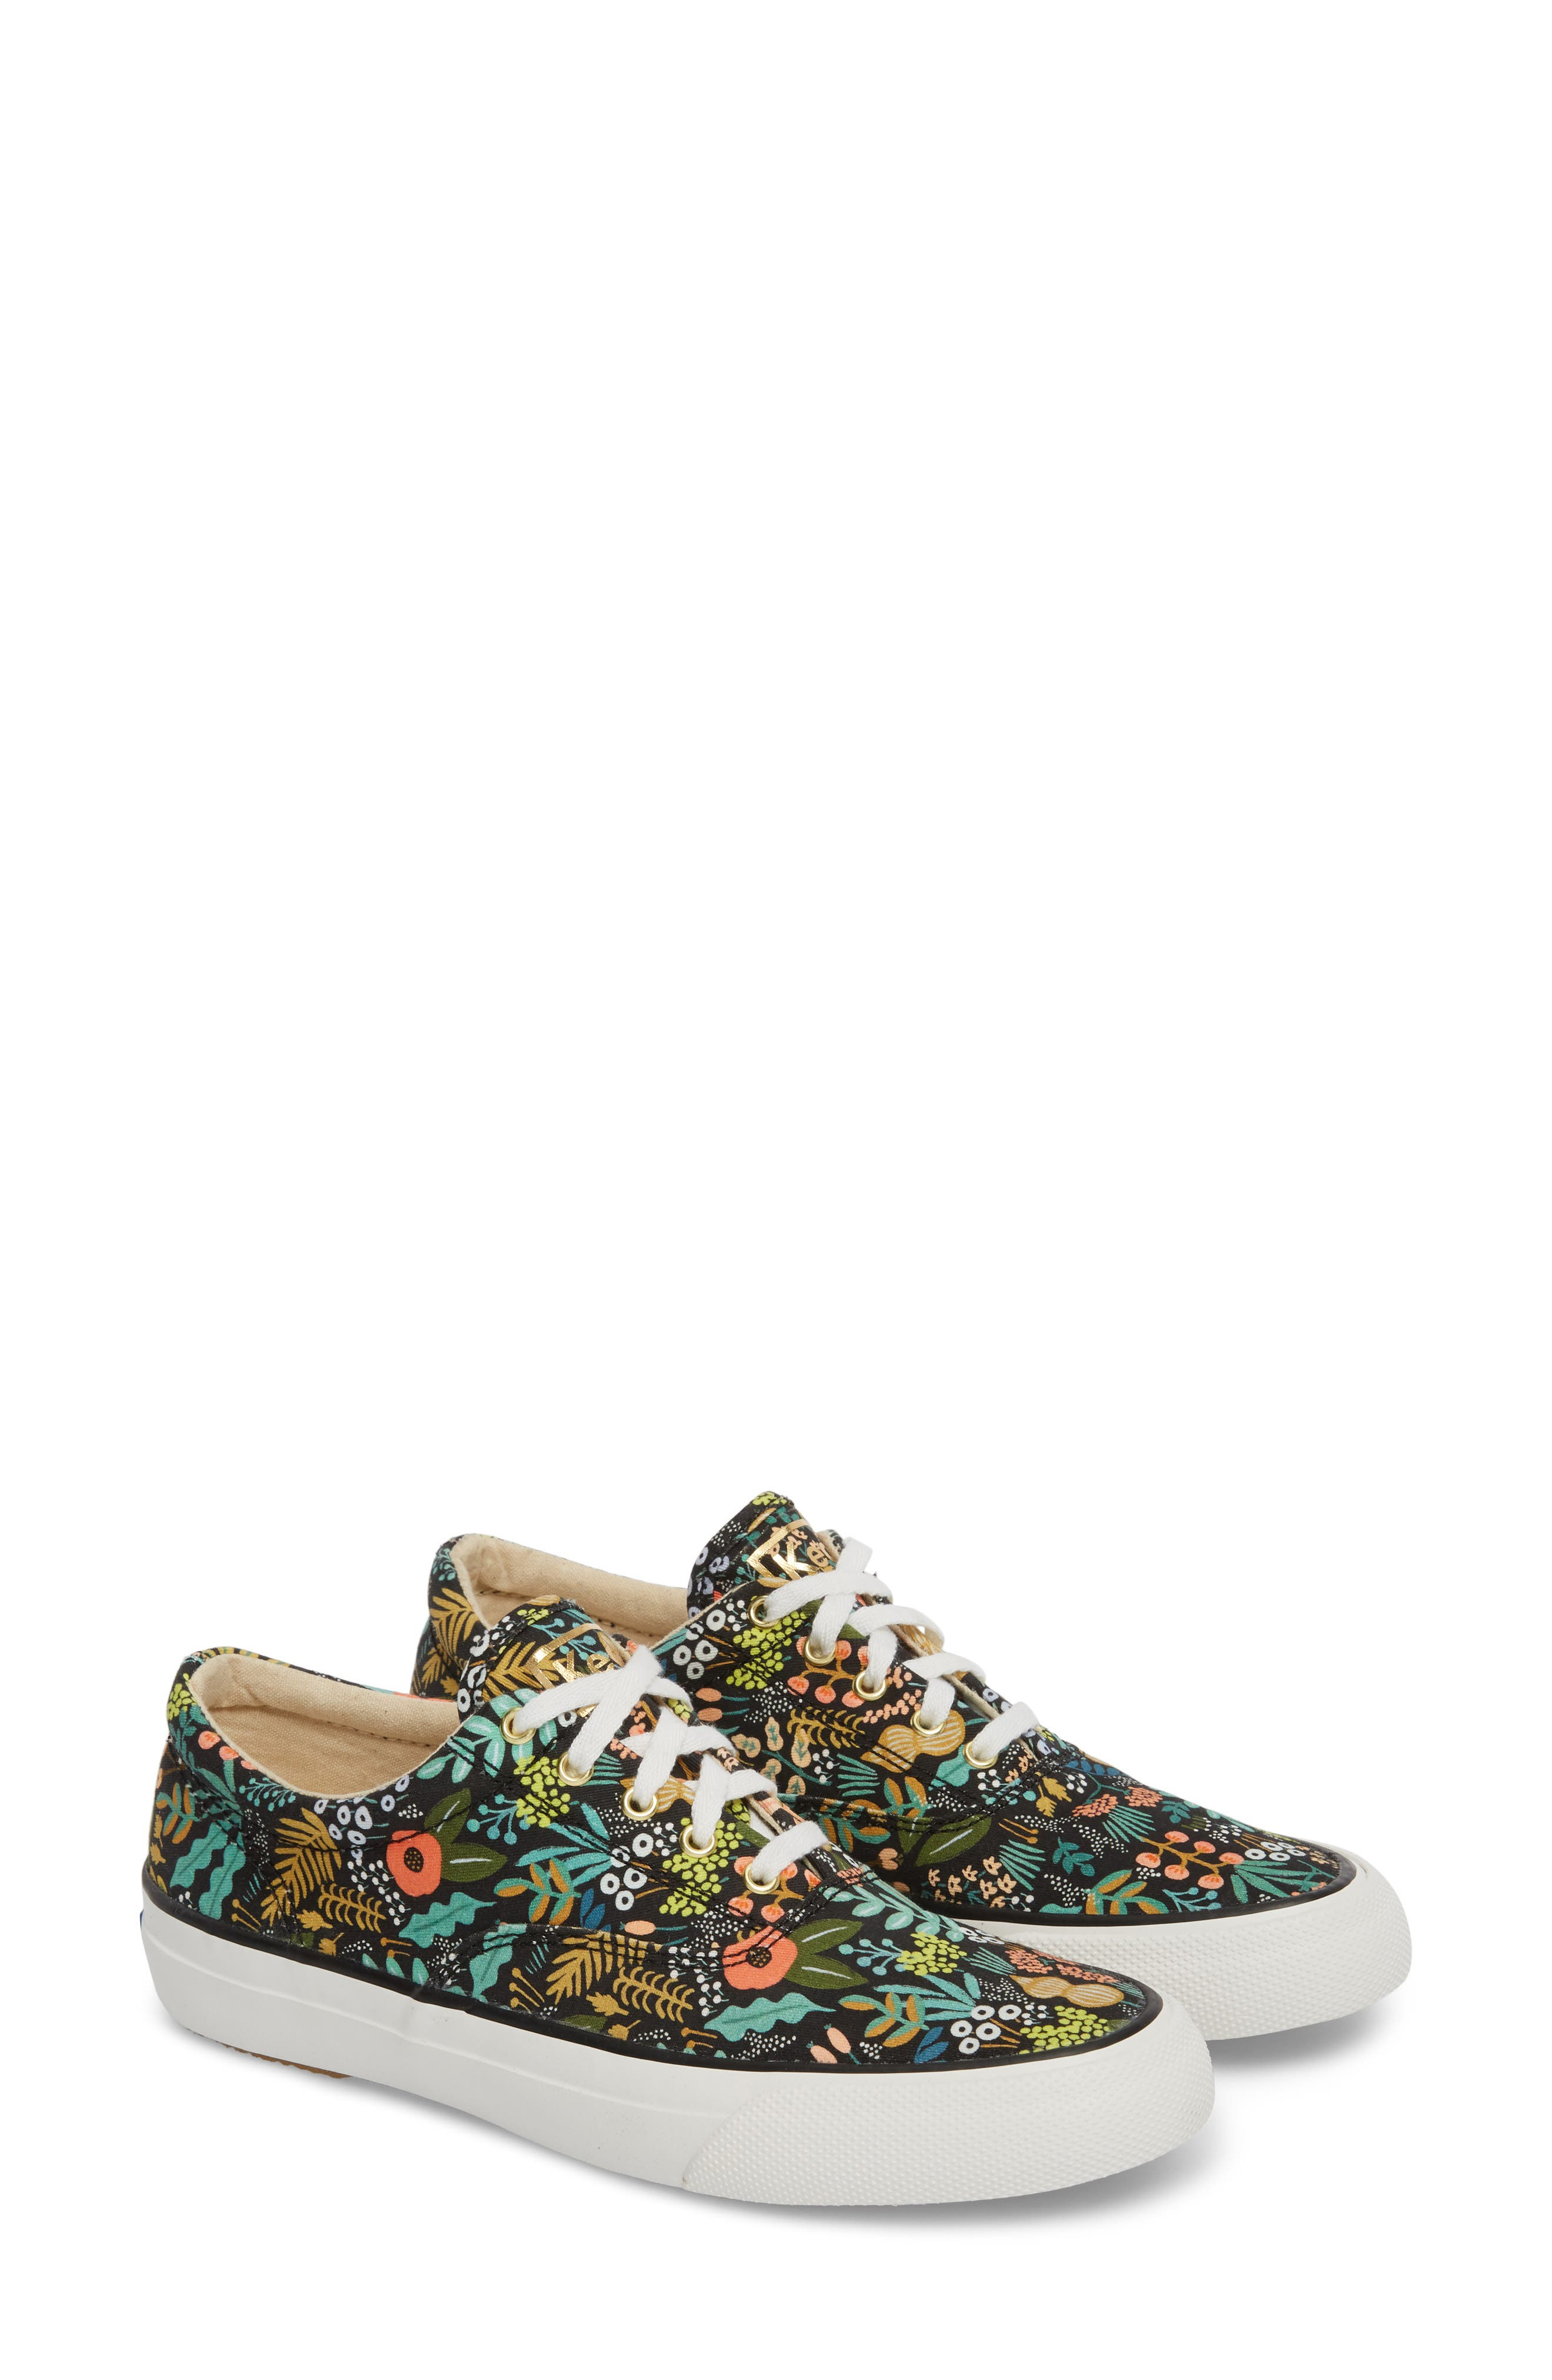 x Rifle Paper Co. Anchor Lively Floral Slip-On Sneaker,                             Alternate thumbnail 2, color,                             BLACK